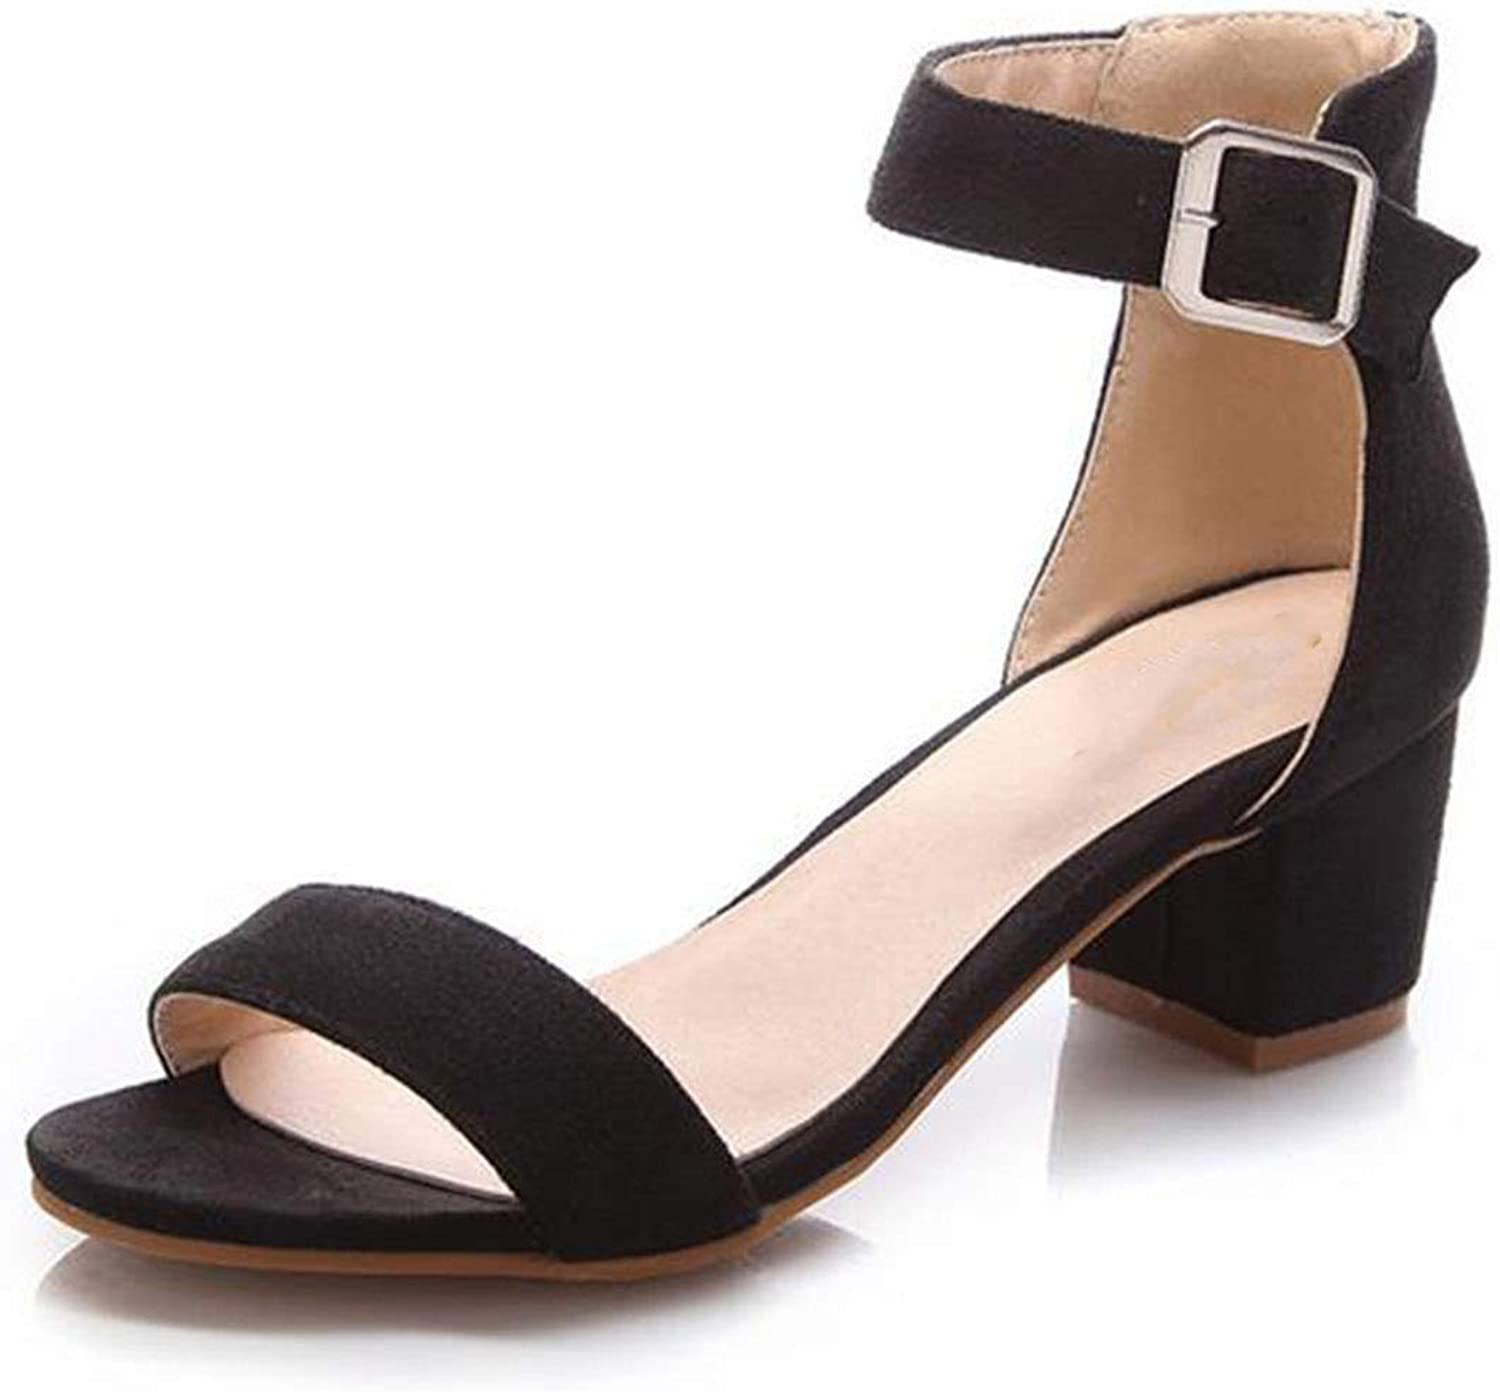 Women High Heel Sandals Women Open Peep Toe shoes Womens Lady Suede Leather Brand shoes Size 34-43